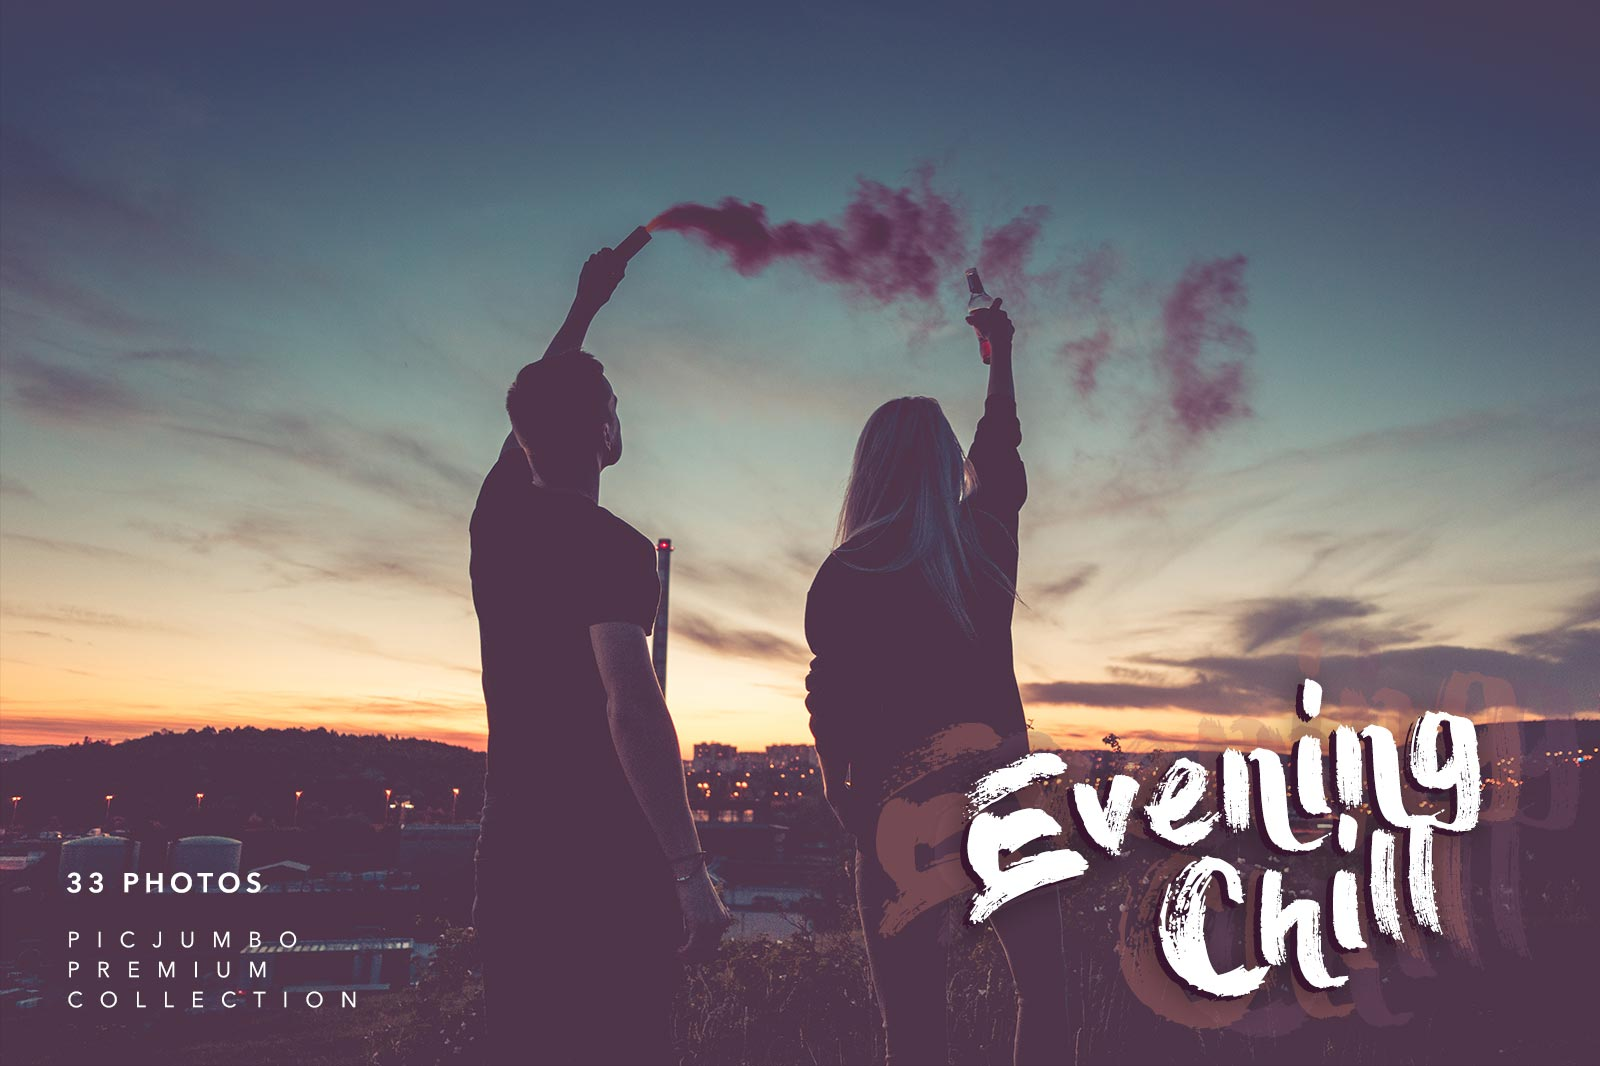 Join PREMIUM and get full collection now: Evening Chill